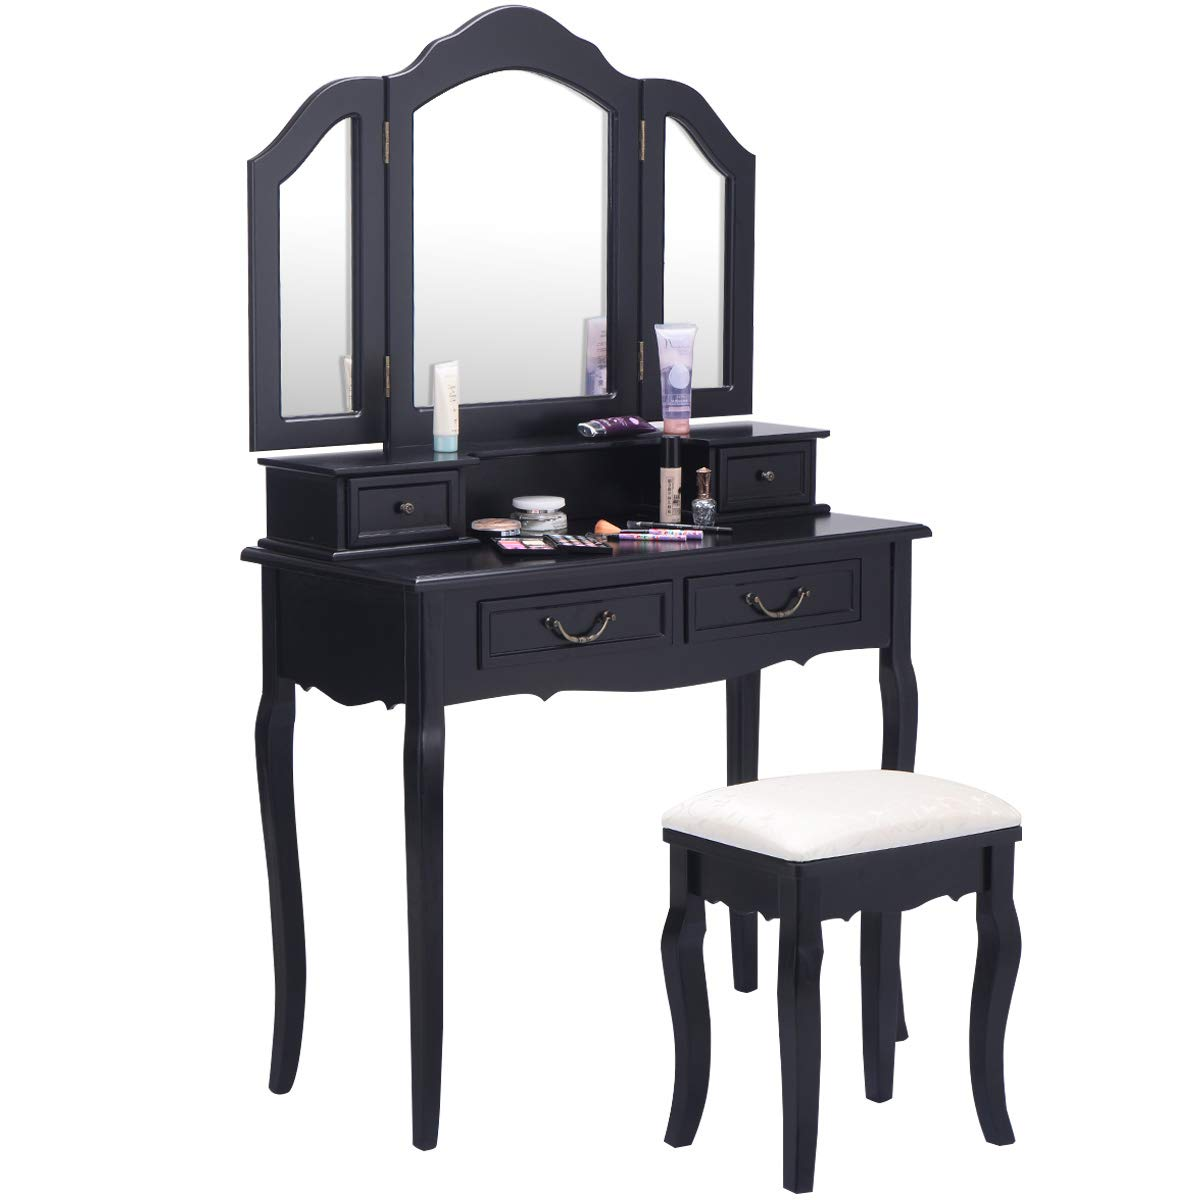 Giantex Bathroom Vanity Set Dressing Table with Stool and Tri Folding Makeup Mirror Home Bedroom Vanities Furniture Cushioned Seat Bench Wood Finish Dresser Dressing Tables with 4 Drawers, Black